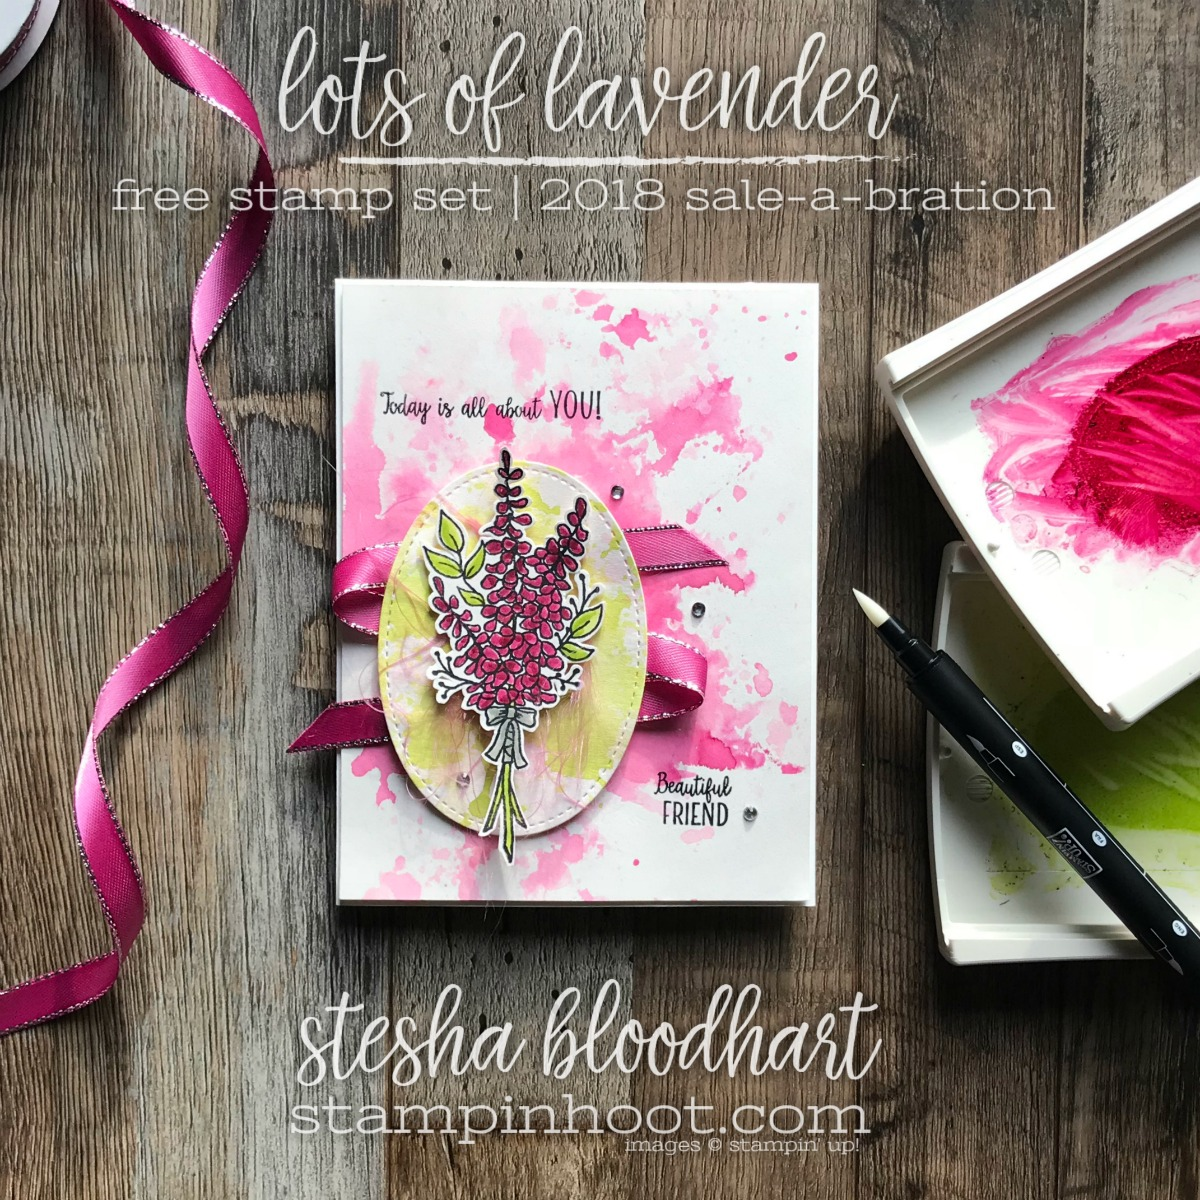 Lots of Lavender Sale-a-Bration Stamp Set FREE with $50 purchase. Shop with Stesha Bloodhart, Stampin' Hoot! #steshabloodhart #stampinhoot #lotsoflavender